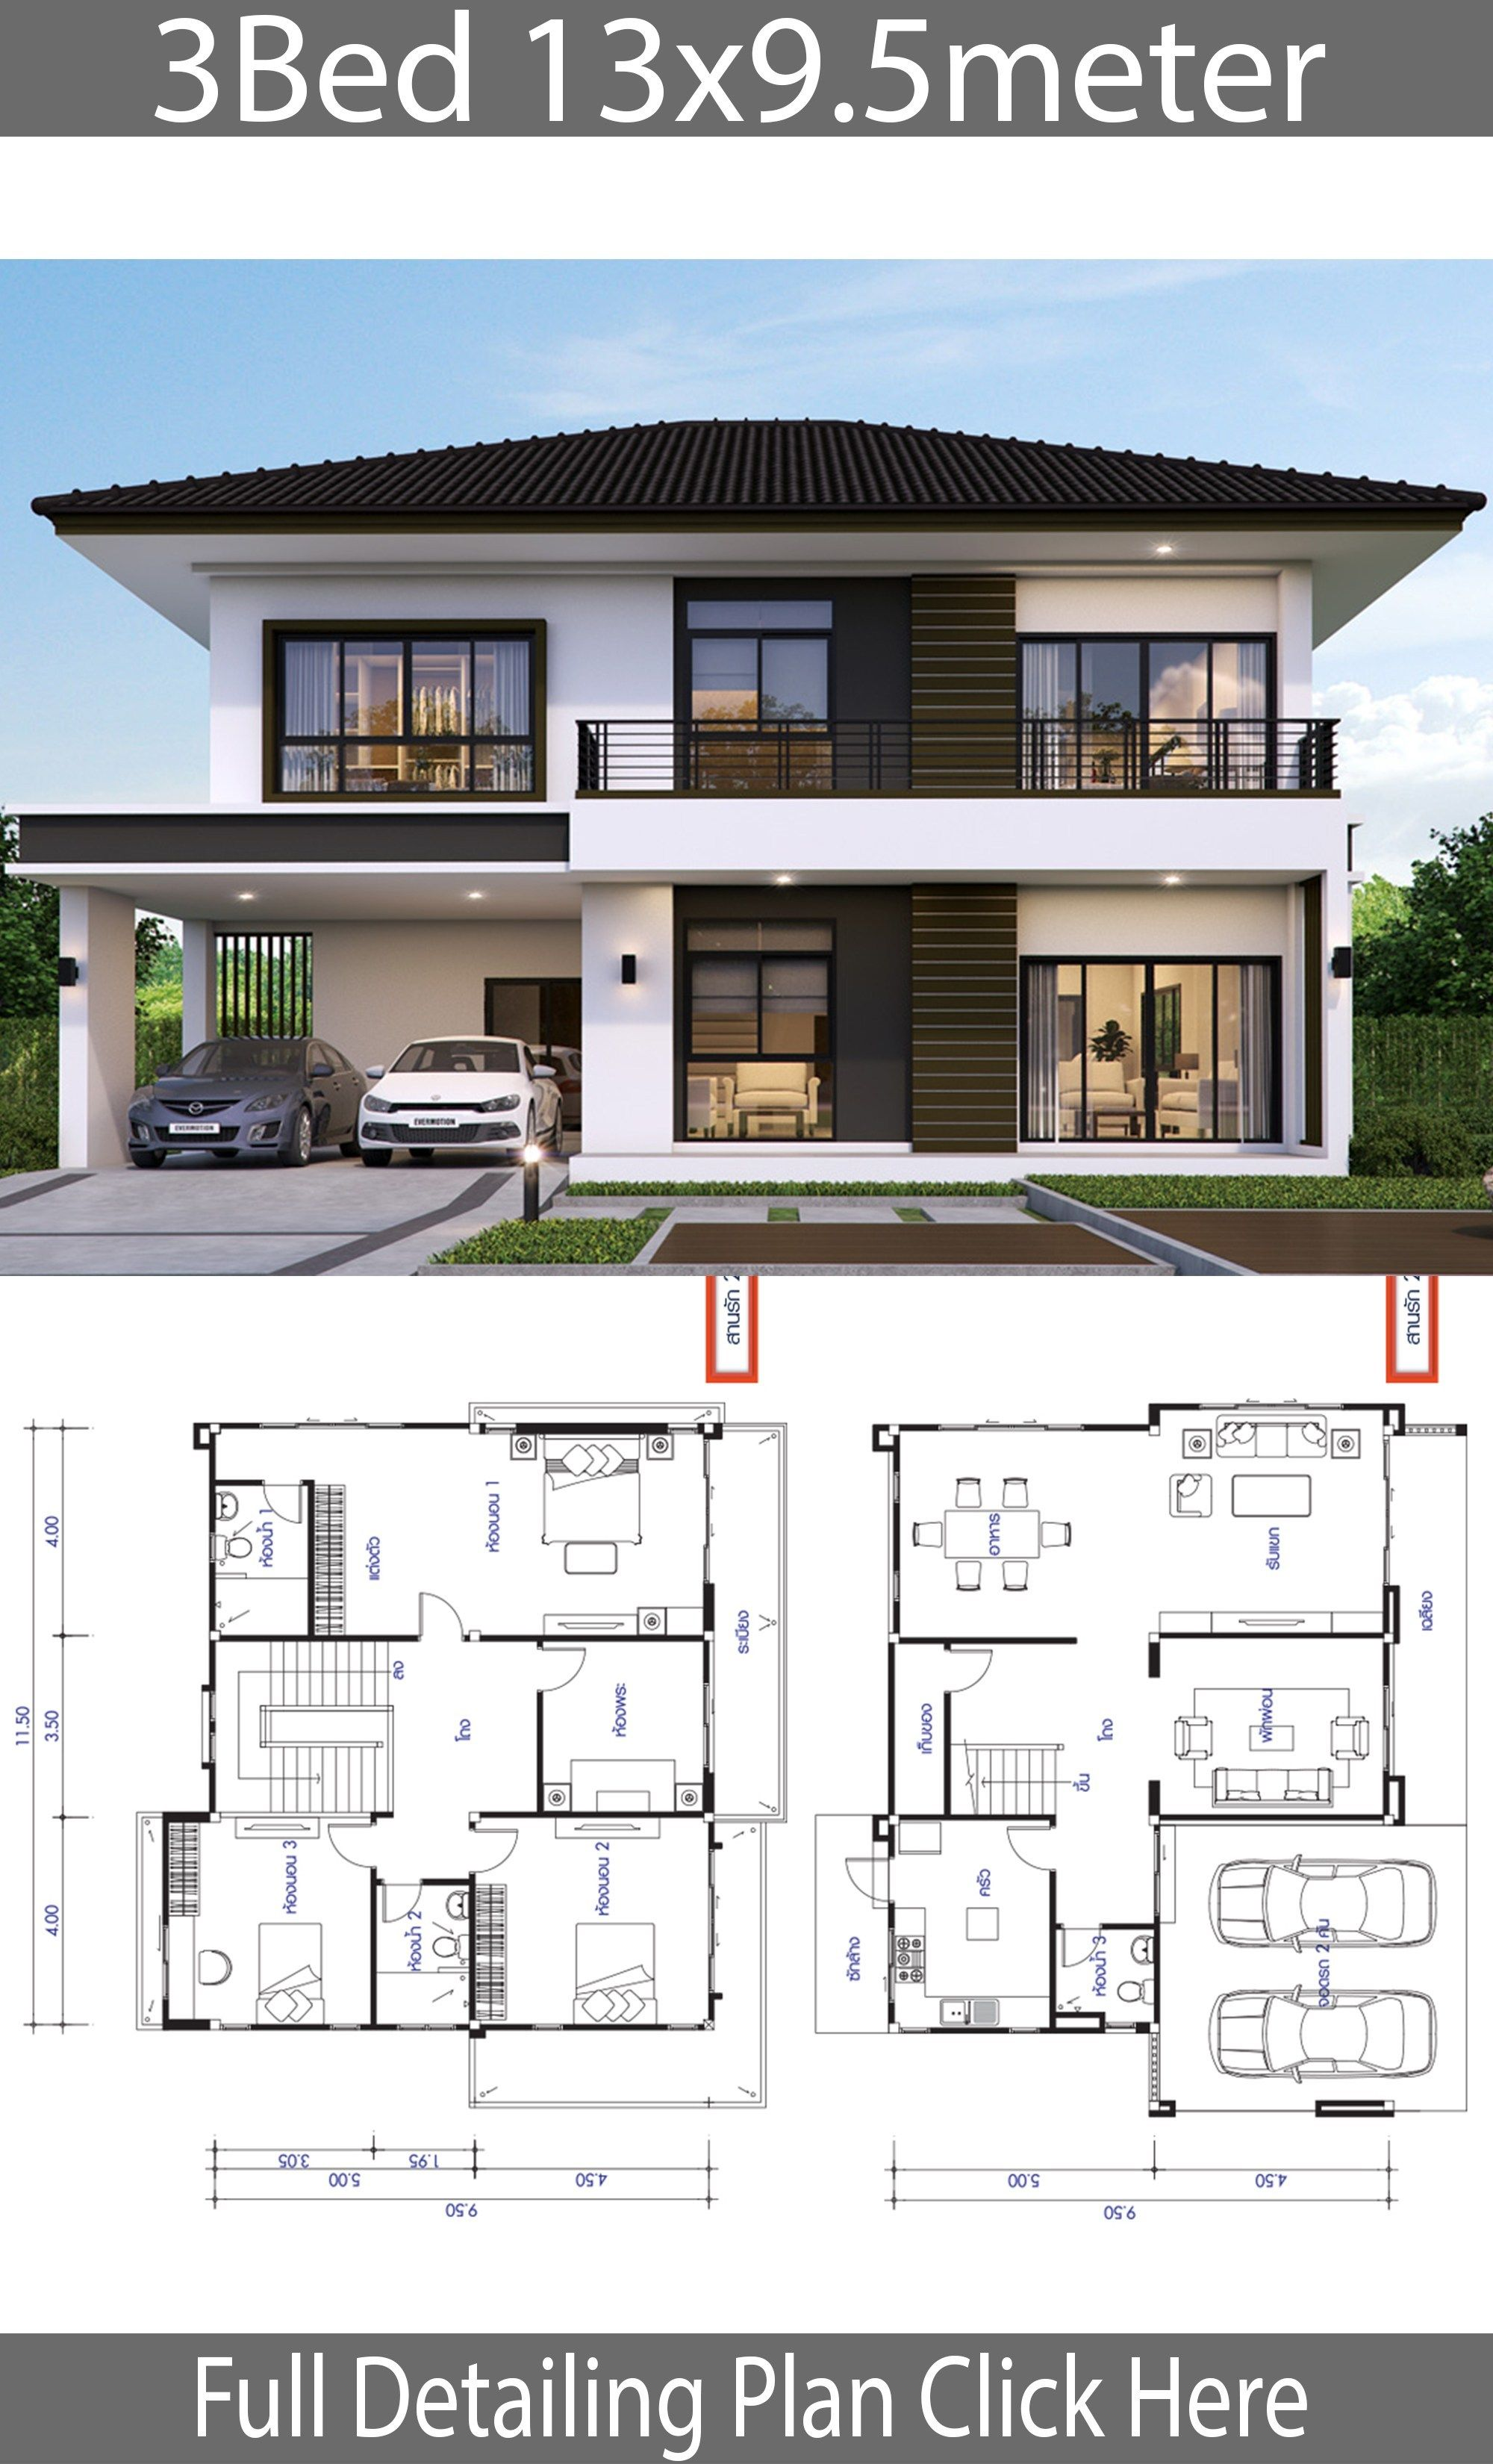 House Design Plan 13x9 5m With 3